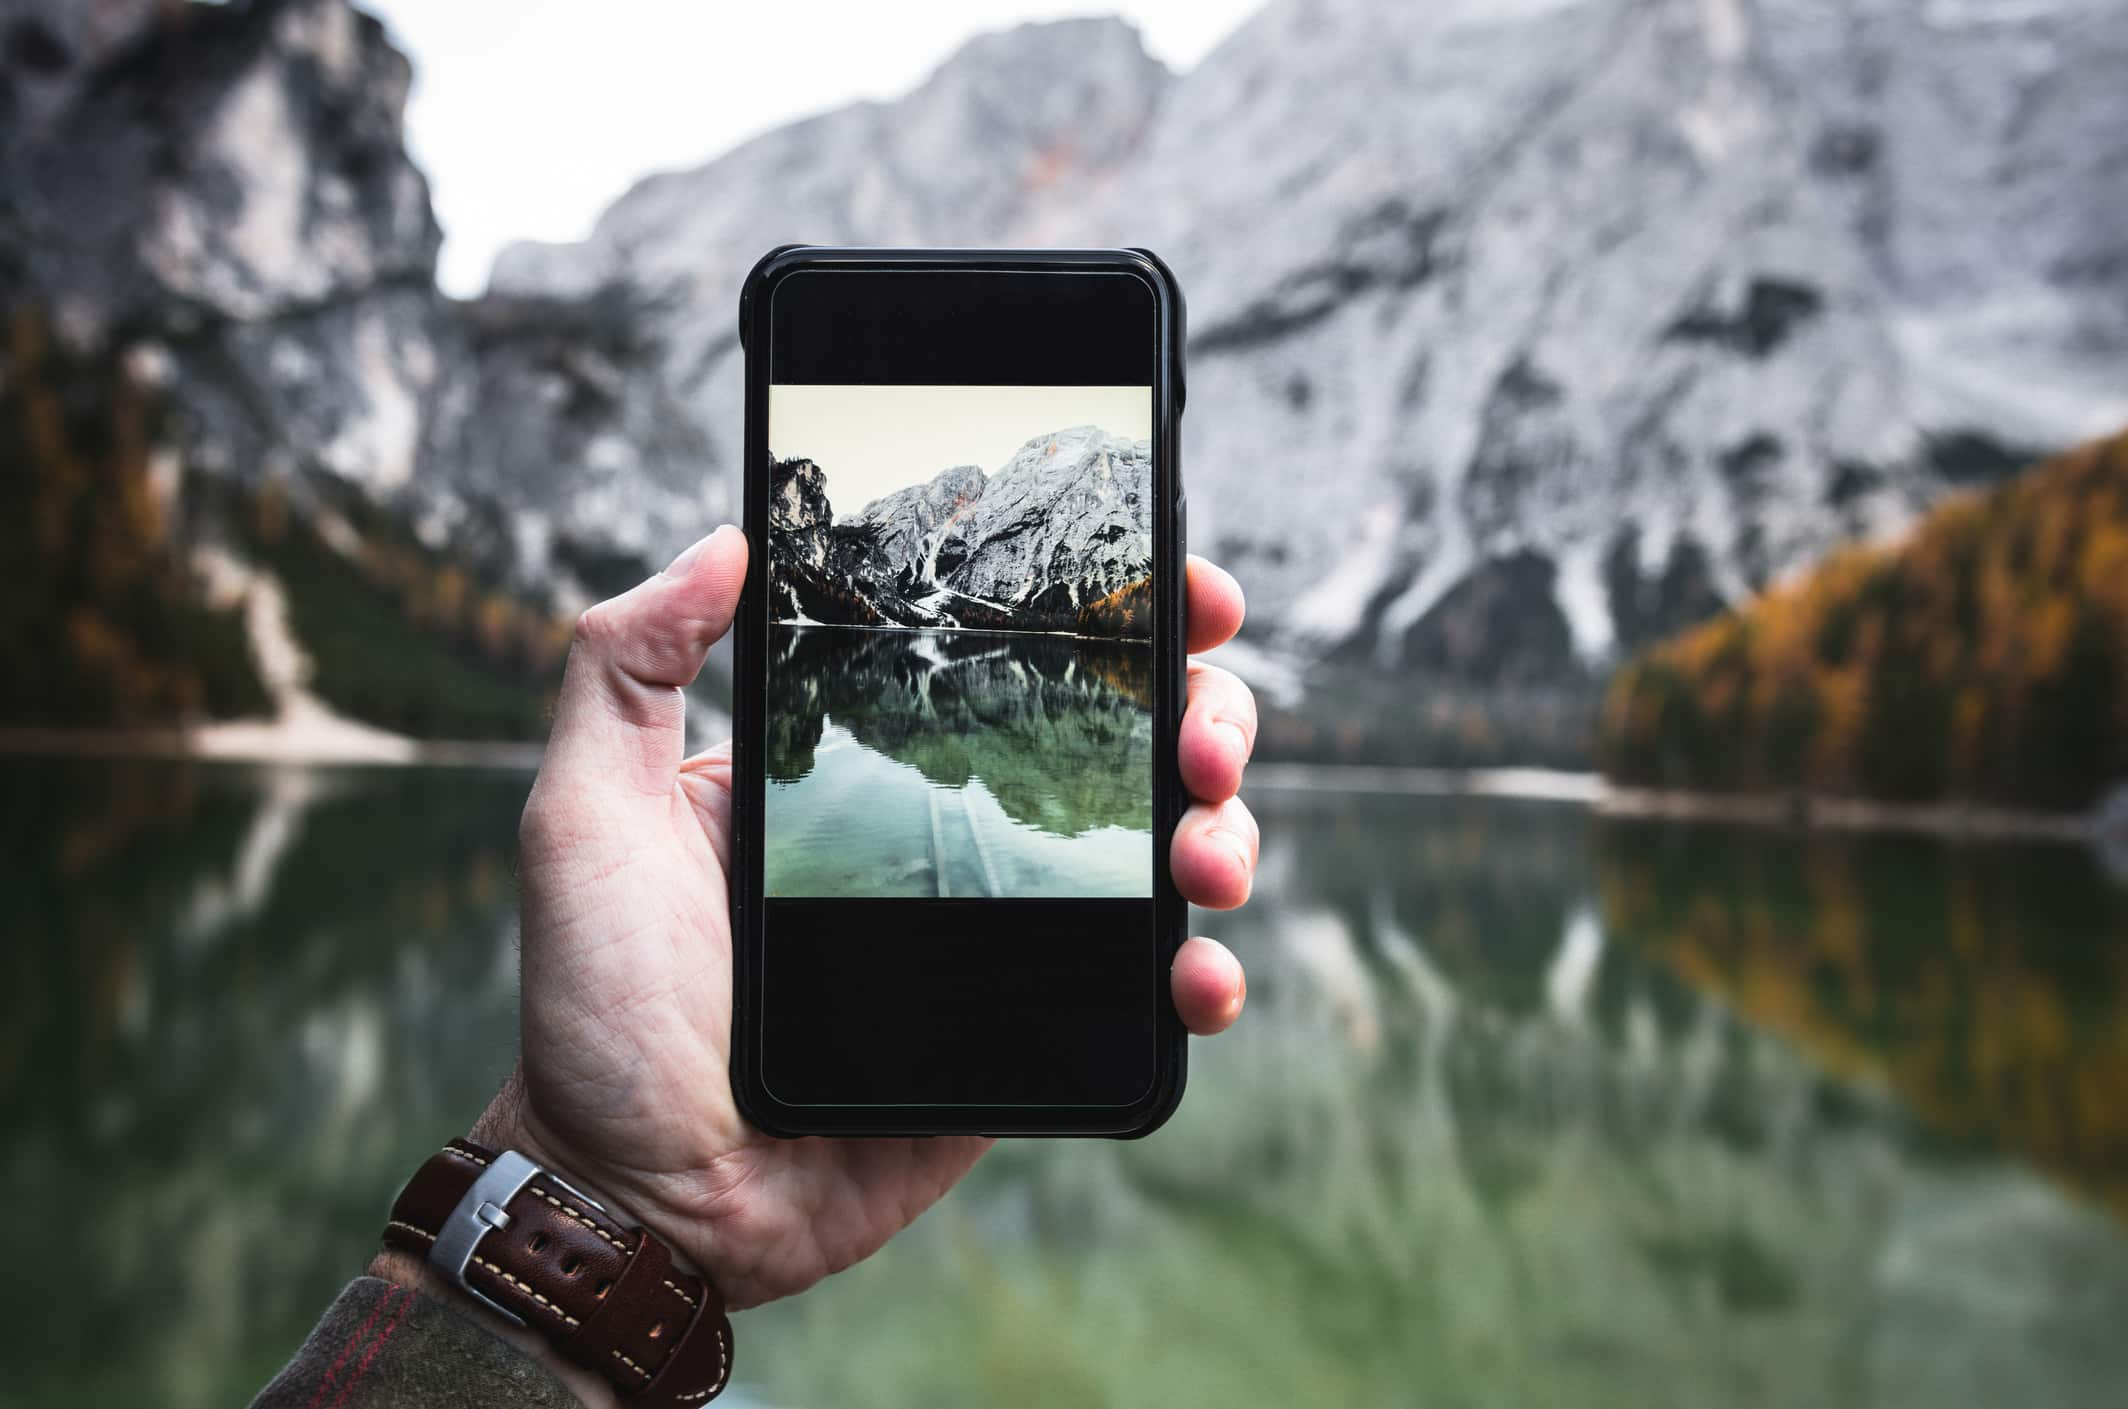 Mobile Video And Photography: Mobile Photography Tricks You Can't Miss